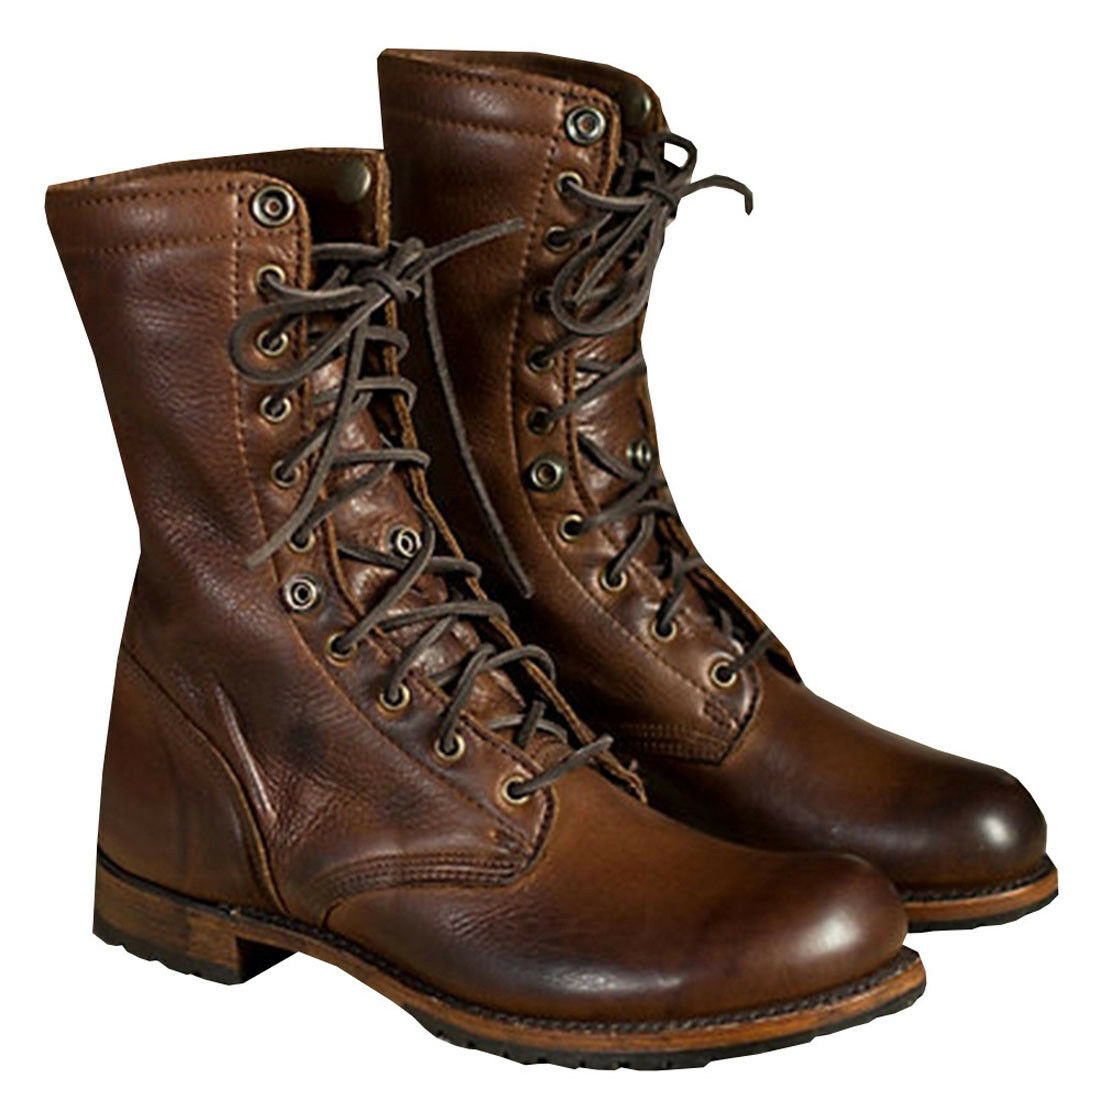 Men's Combat High-Top Lace-up Knight Boots Motorcycle Martin Shoes PU Leather